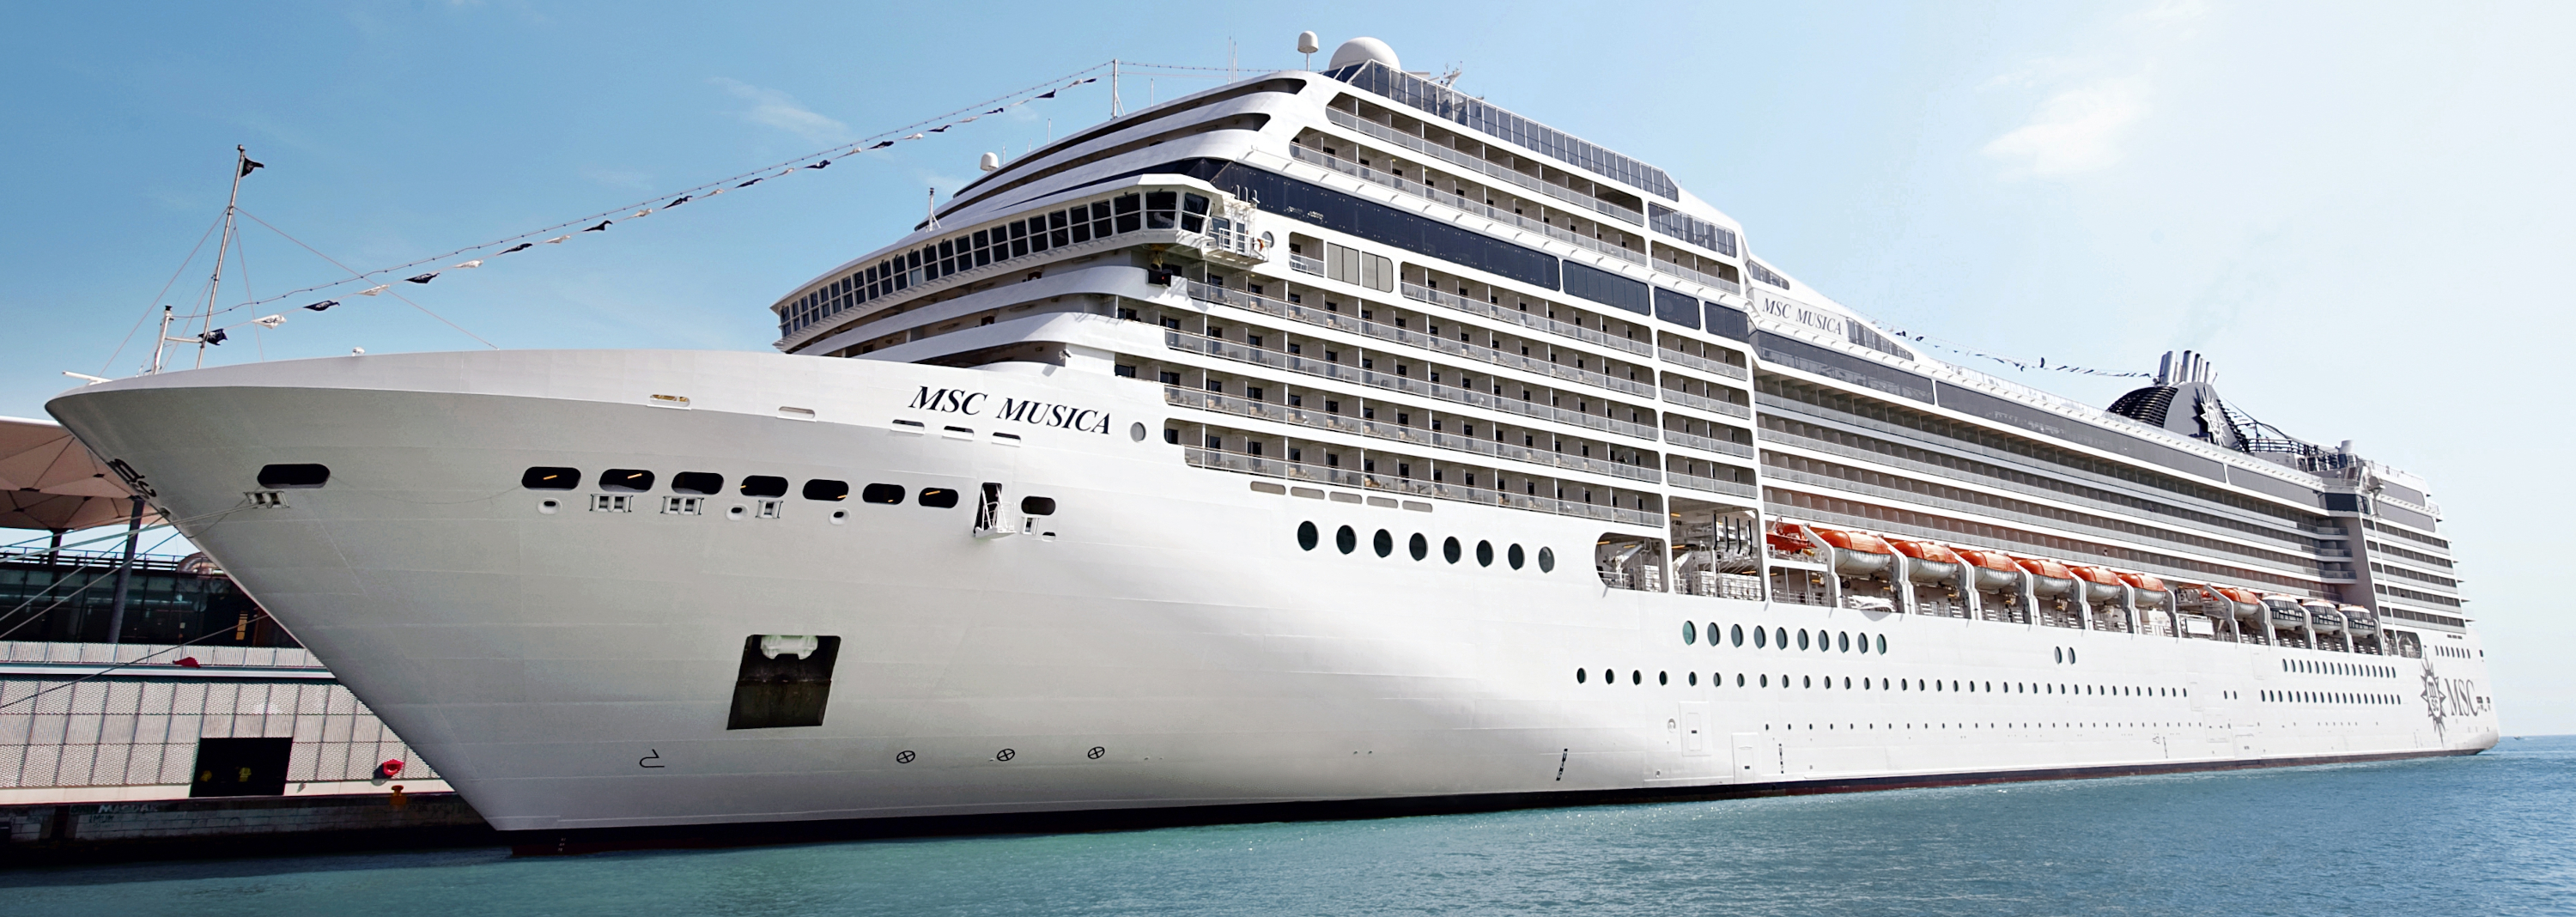 Greece & Croatia Cruise on MSC Musica